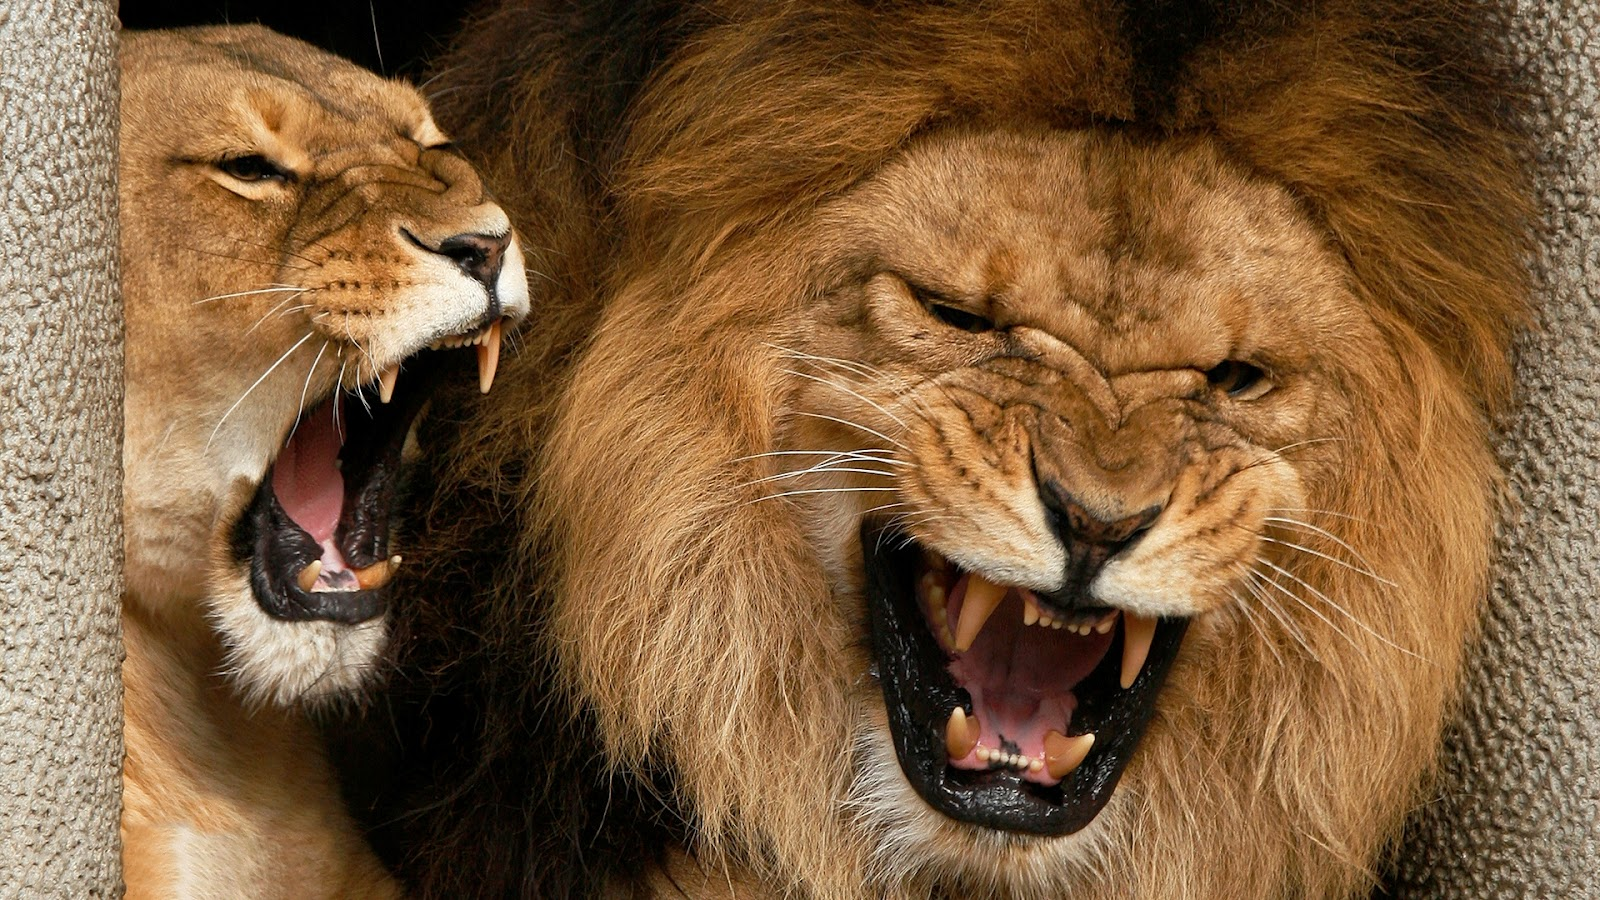 Angry Lions Hd Wallpaper Tontenk